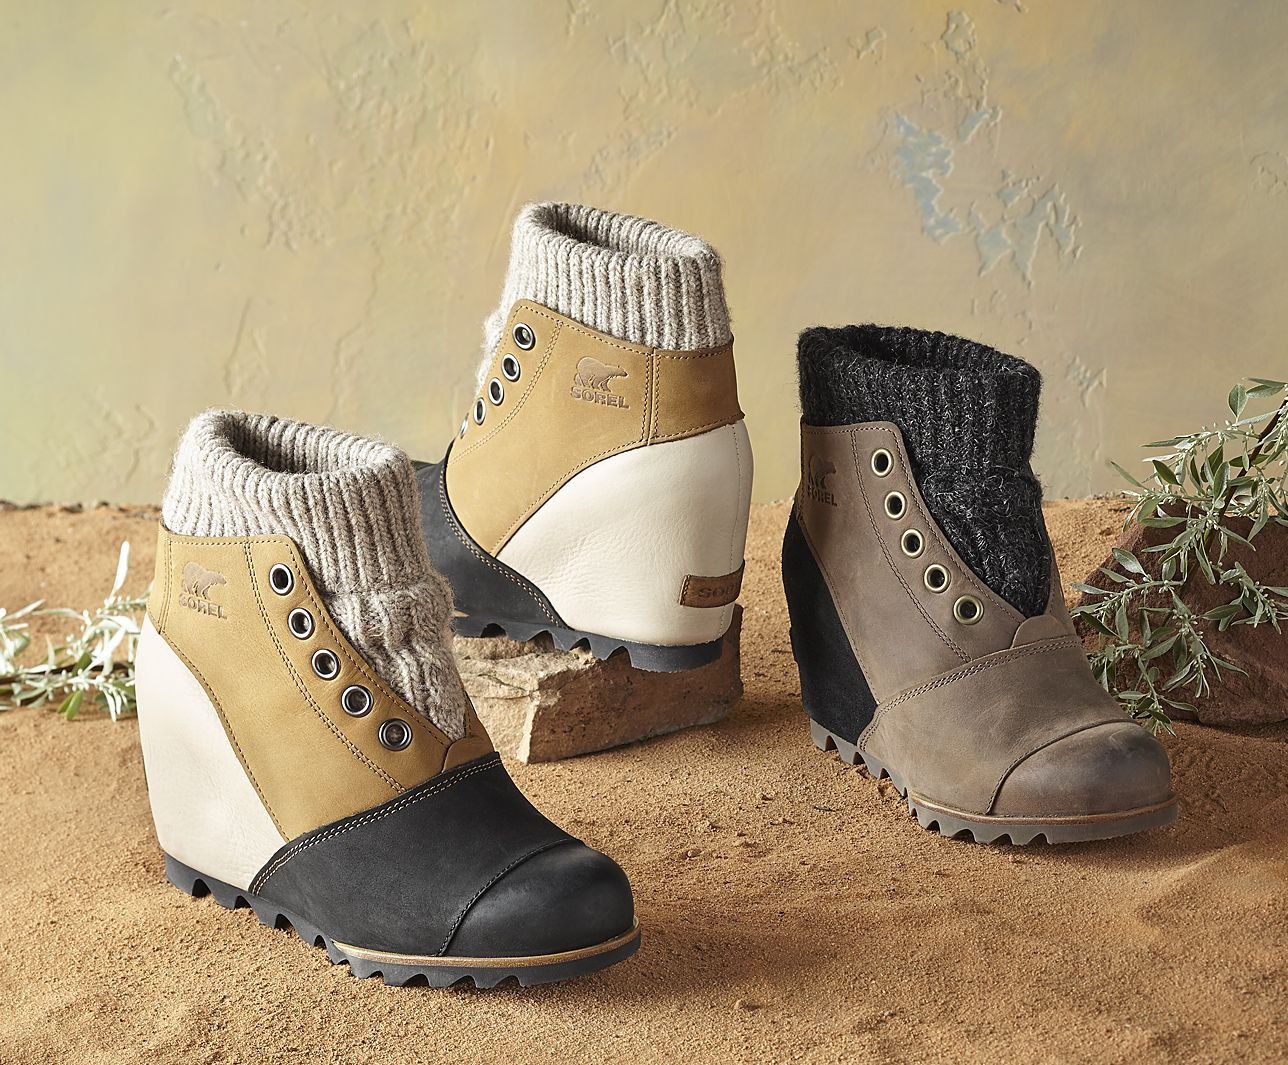 Joanie Sweater Boots Sassy Leather Boots Are Just The Thing For